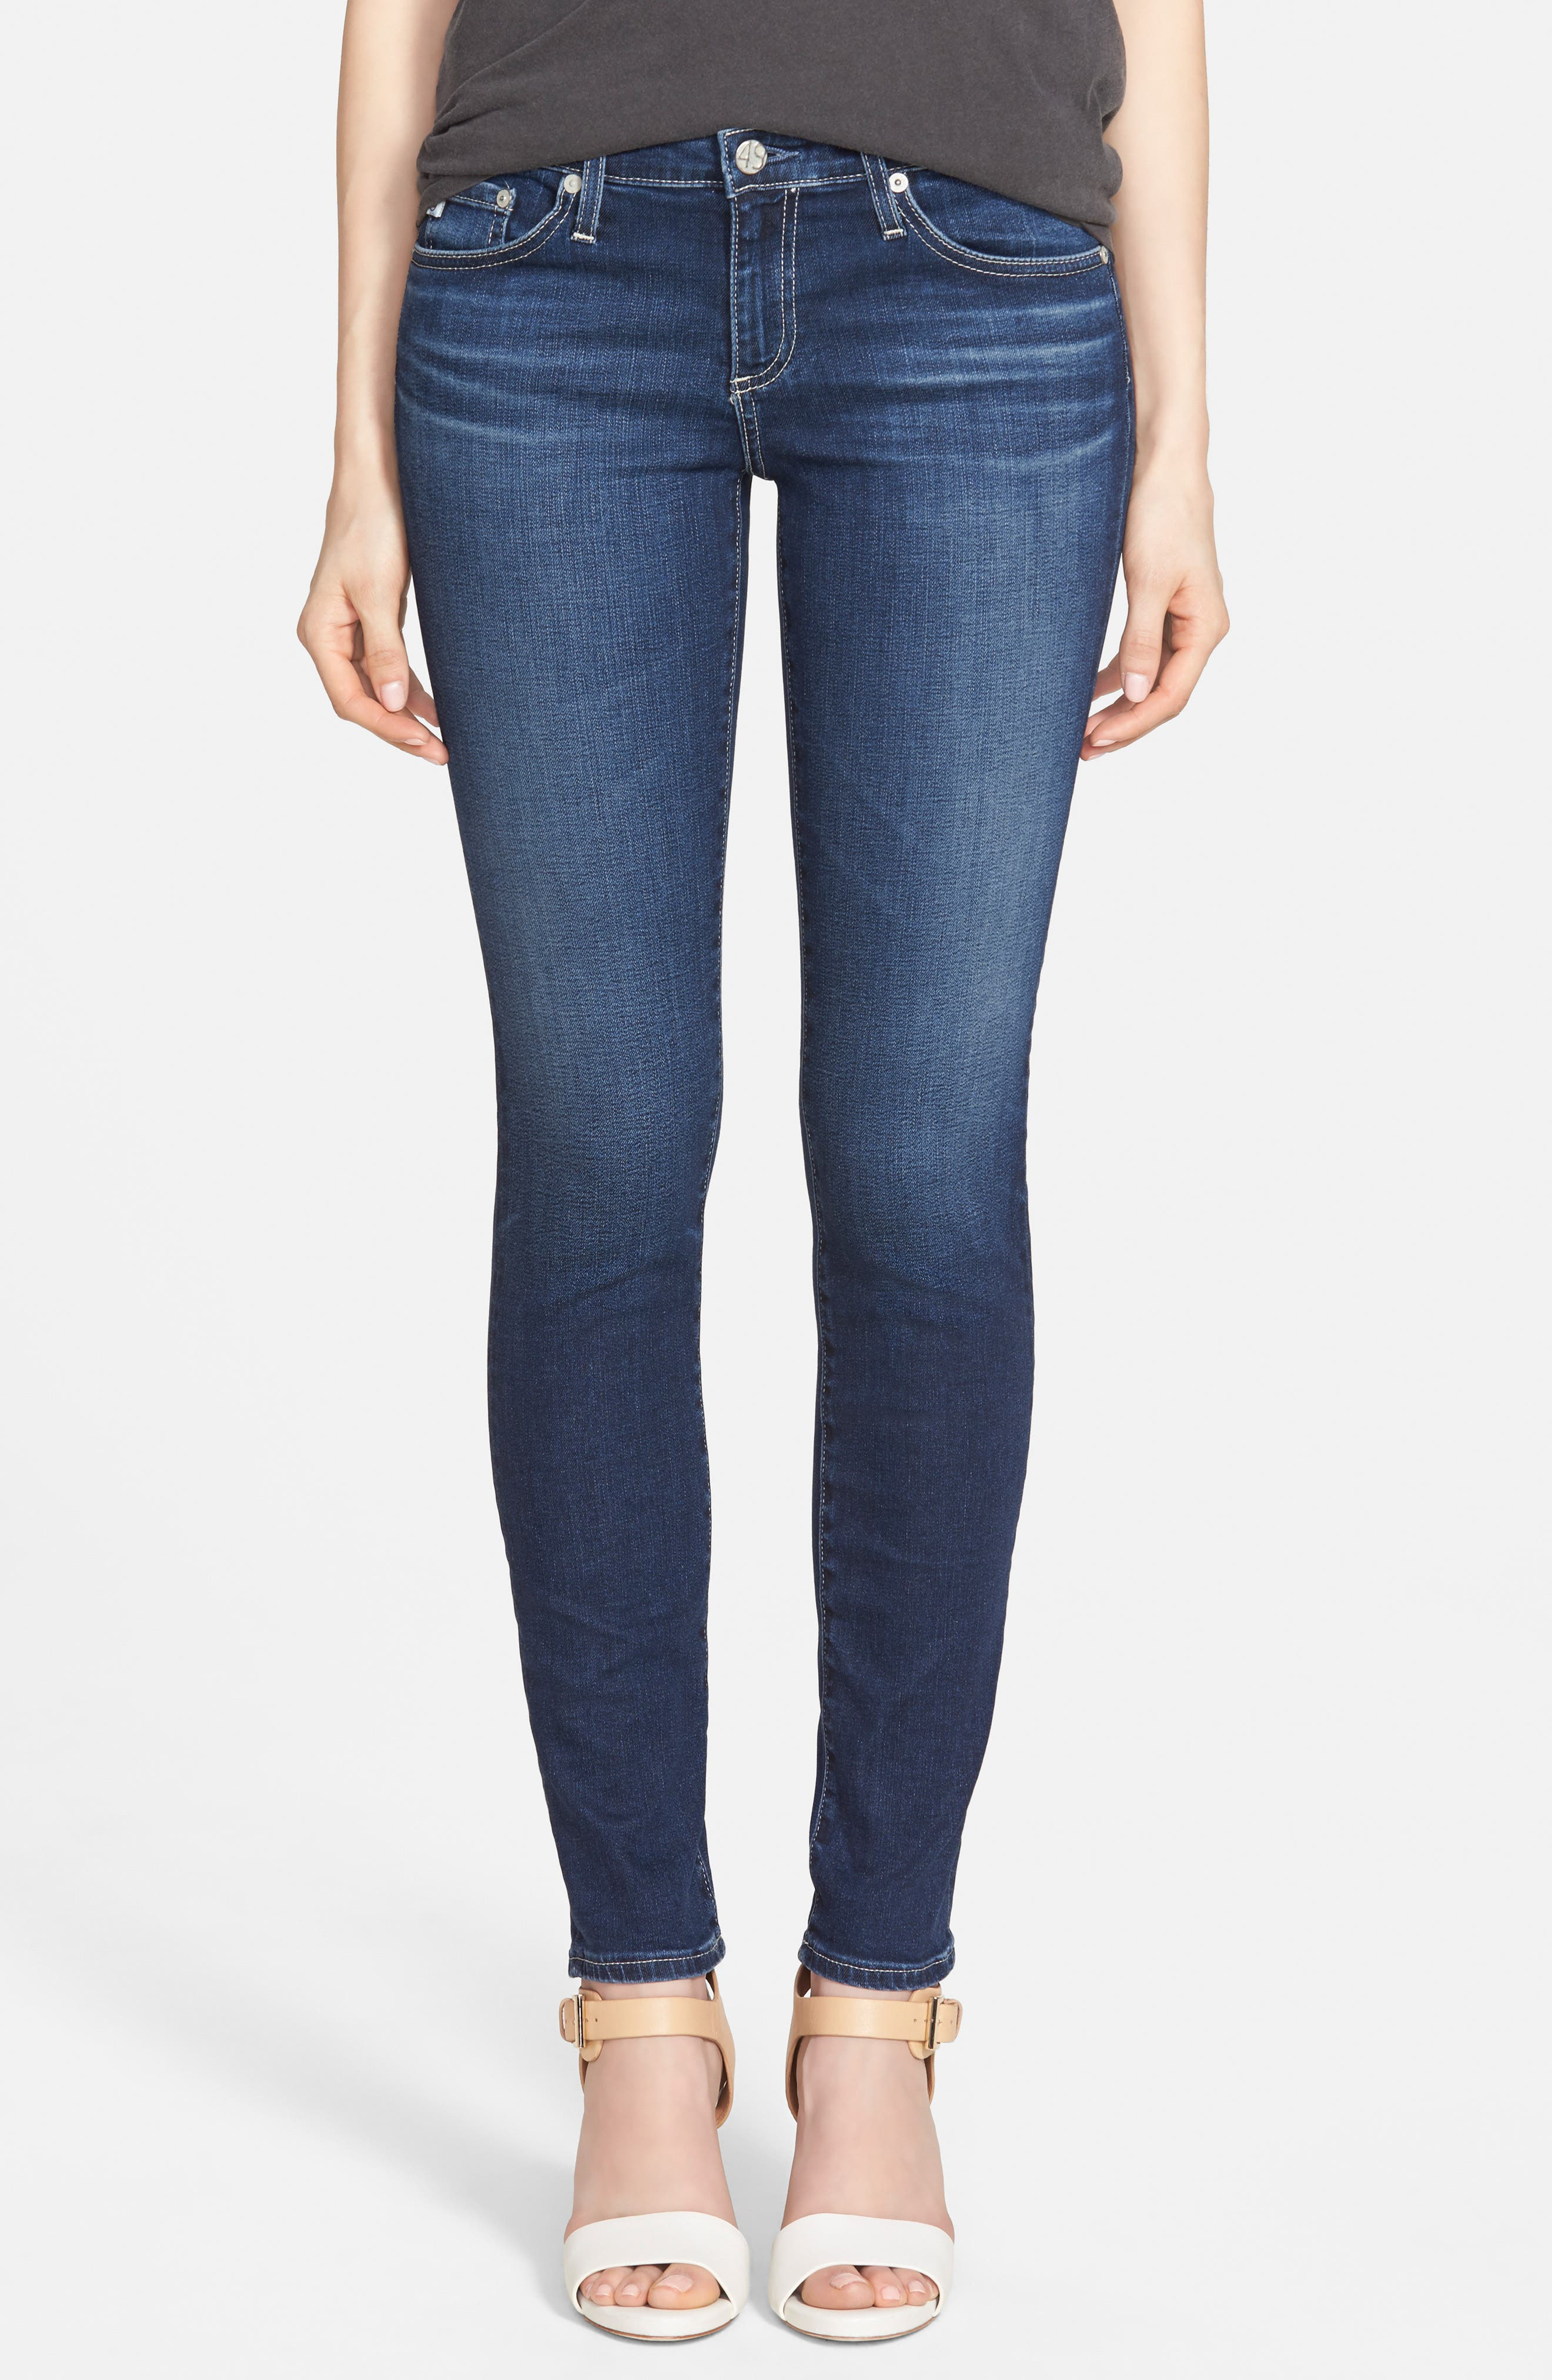 'The Stilt' Cigarette Leg Jeans,                             Main thumbnail 1, color,                             Eleven Year Journey